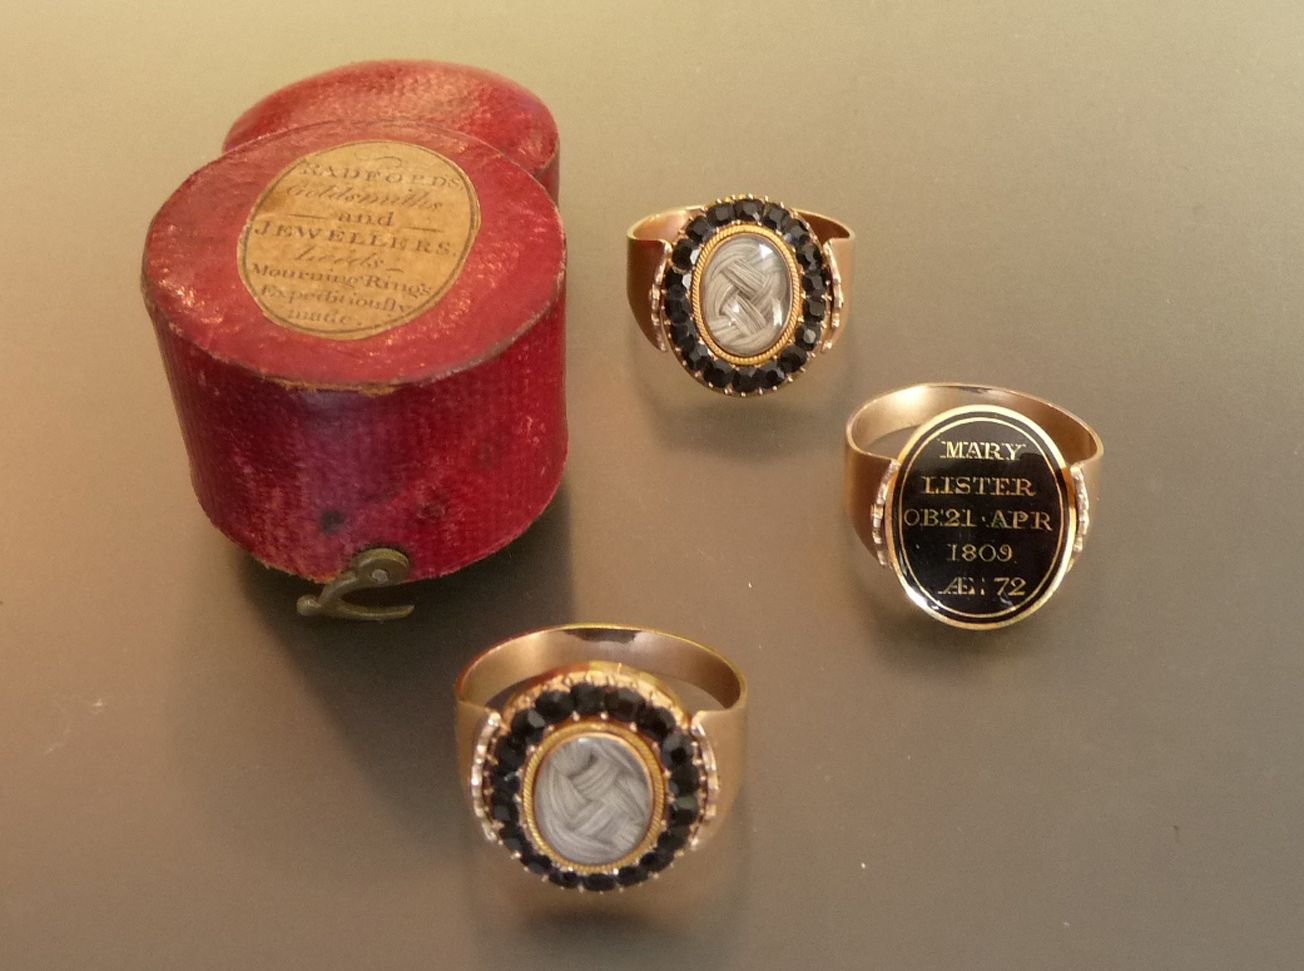 A Set of Three Mourning Rings, each encloses plaited hair within faceted jet on a swivel head, enamelled in black to the reverse to read 'MARY LISTER OB21 APR 1809 Ae: 72', in red cases, one with a paper label for Radfords goldsmiths and jewellers, Leeds